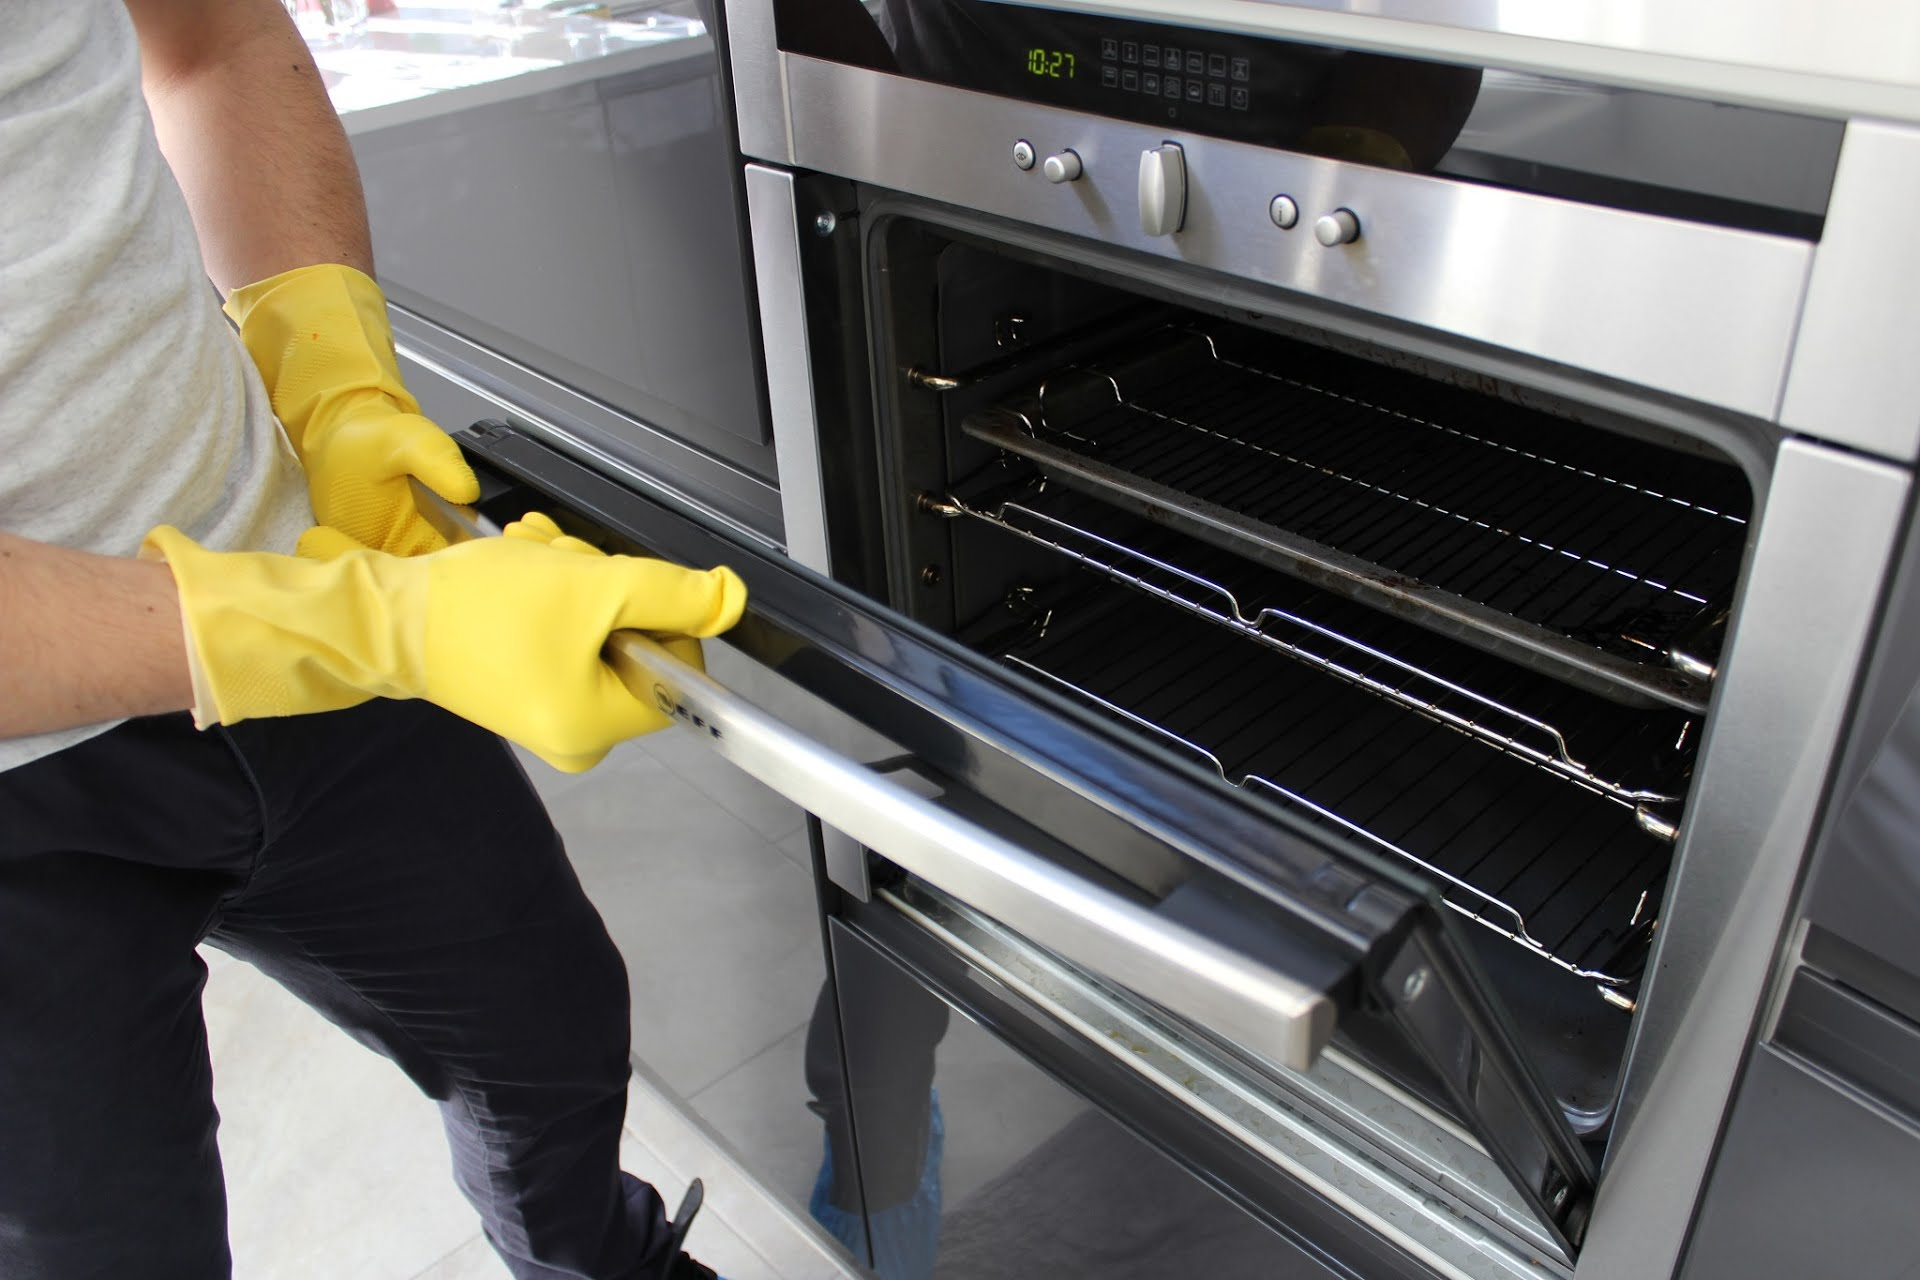 Keeps Grime In Oven At Bay Hiring Oven Cleaners?